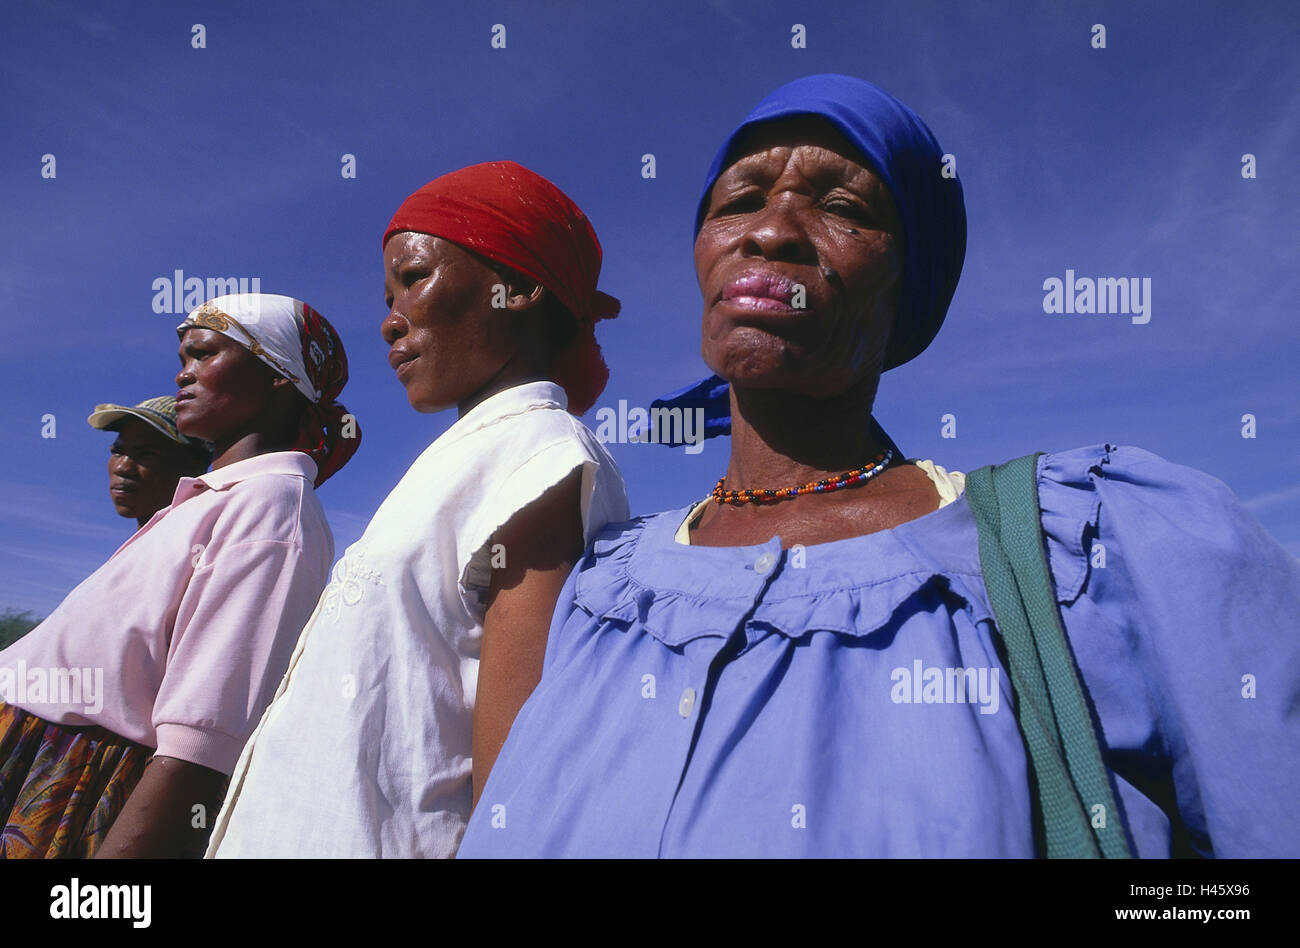 Botswana, women, portraits, clothes, brightly, clothes, headscarfs, headgear, locals, heavens, cloudless, blue, - Stock Image